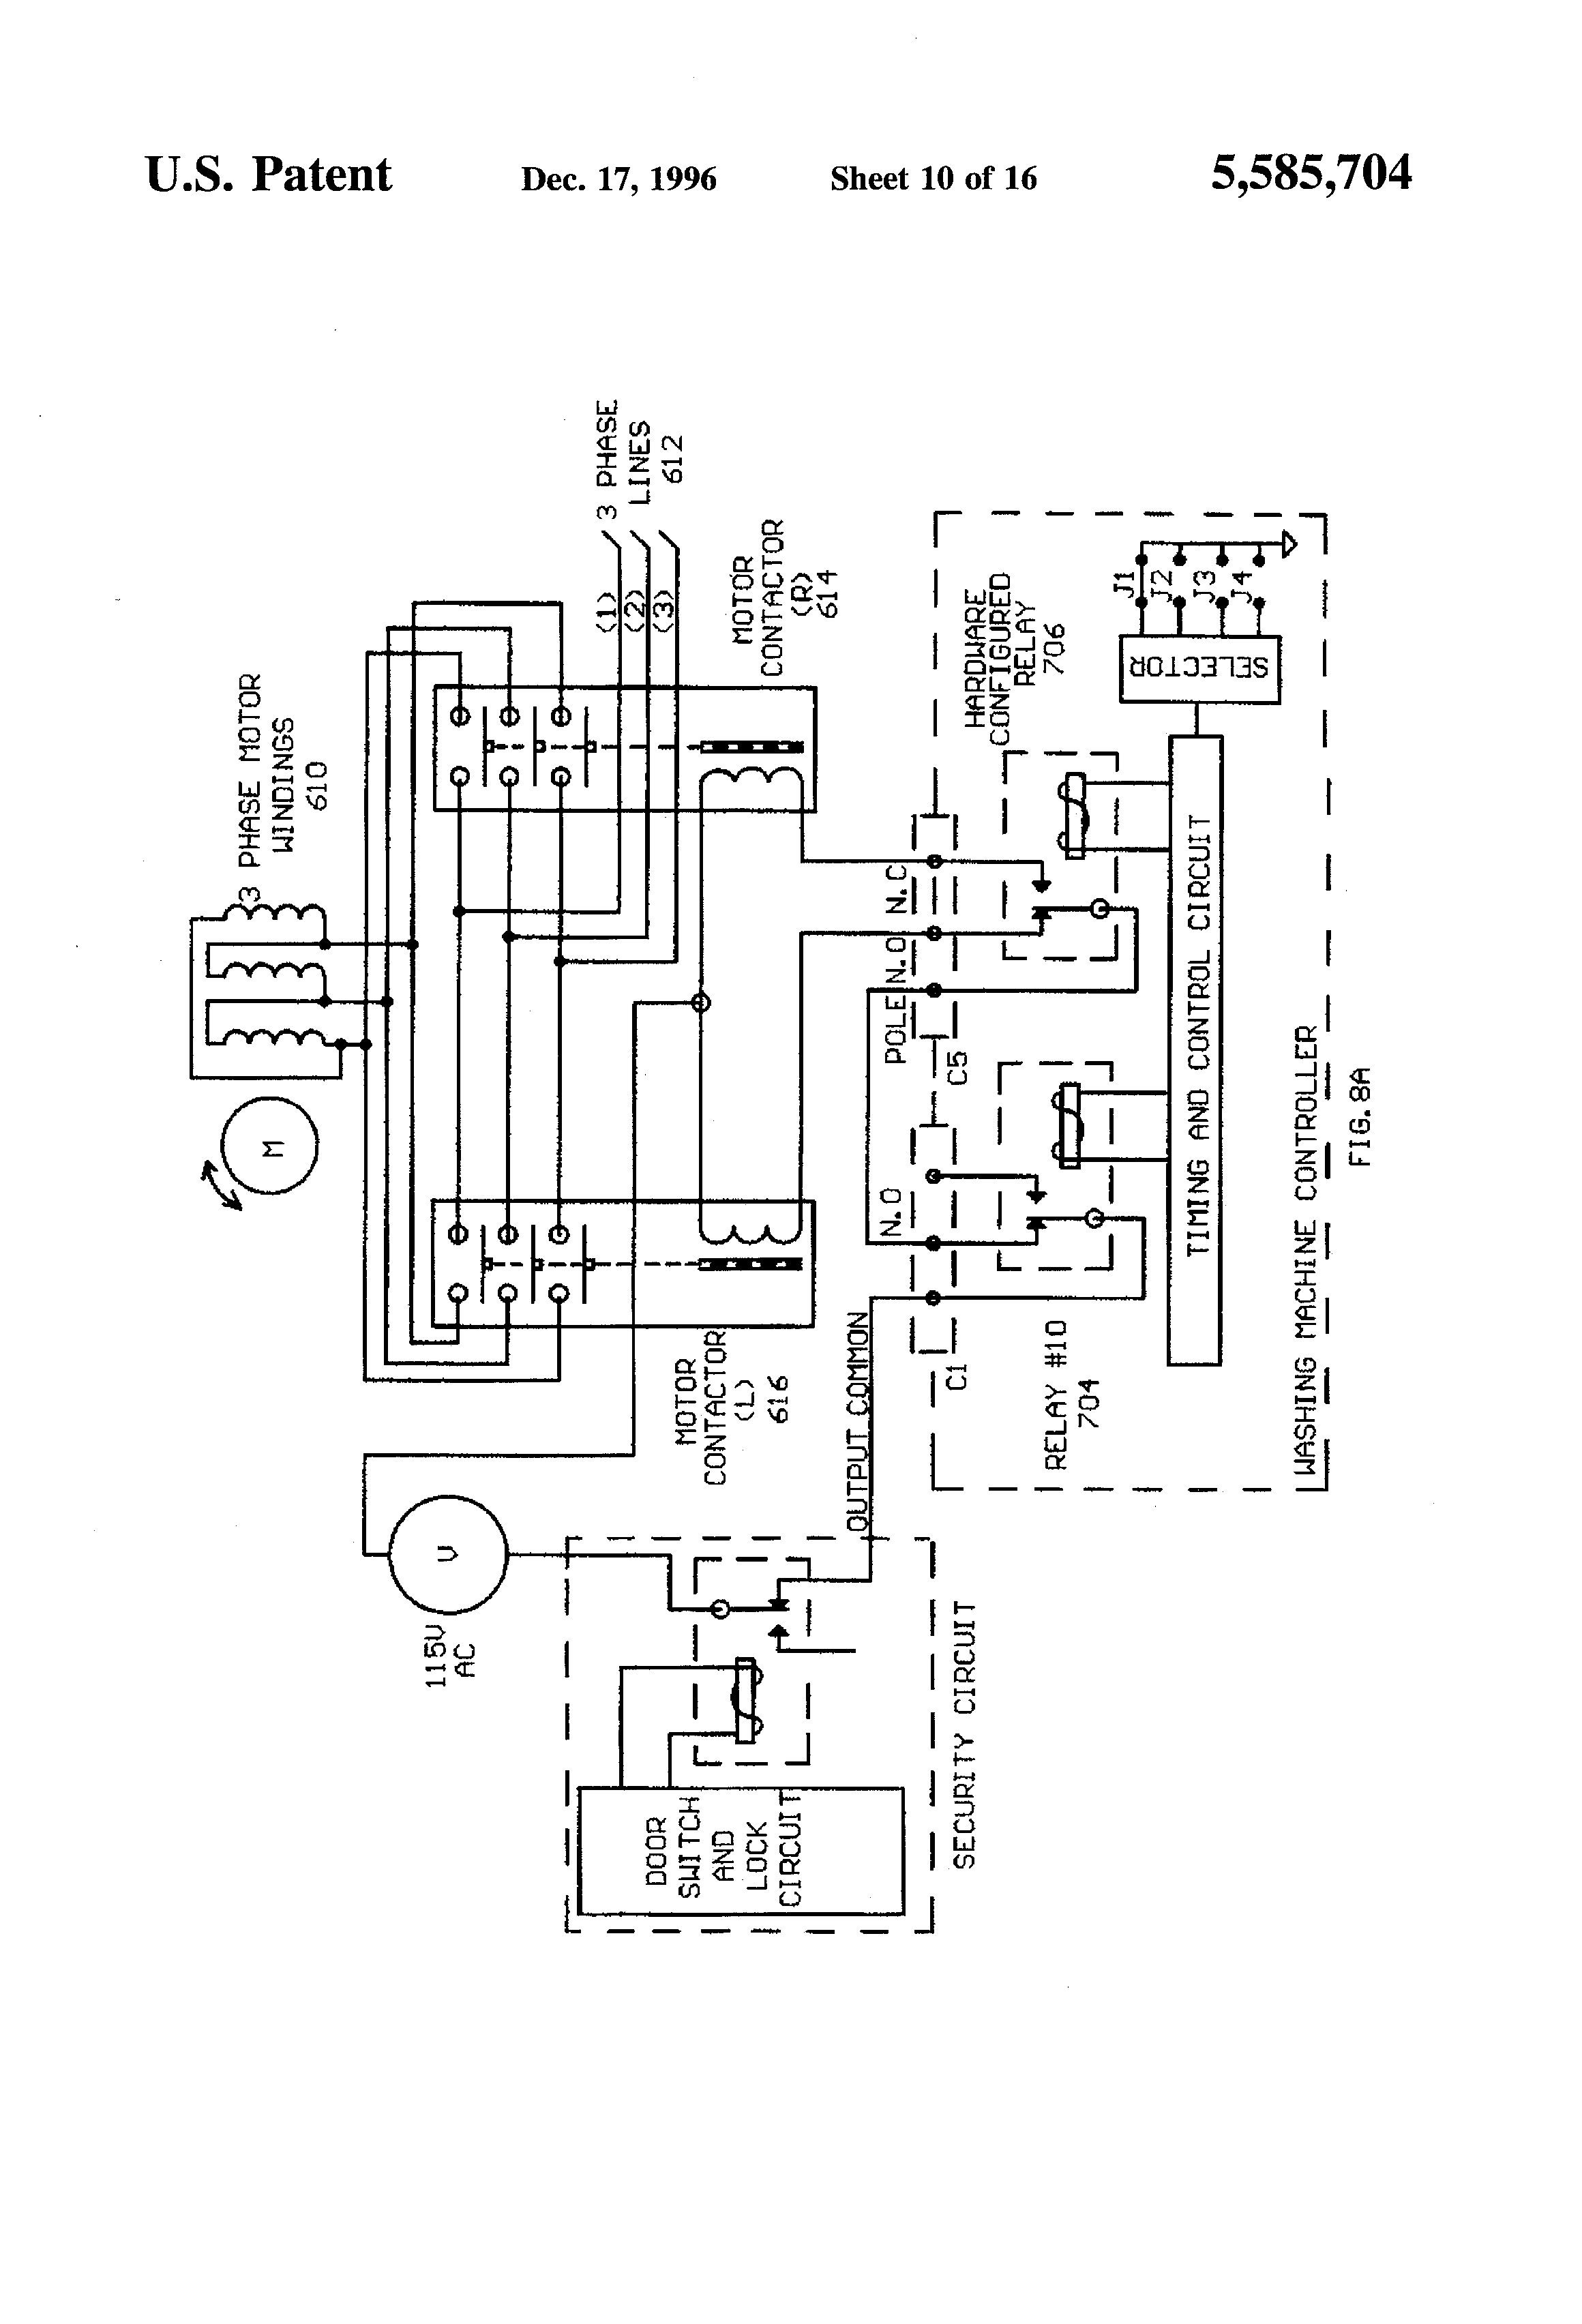 wiring diagram of washing machine motor | wiring diagram | washing machine  motor, diagram, washing machine